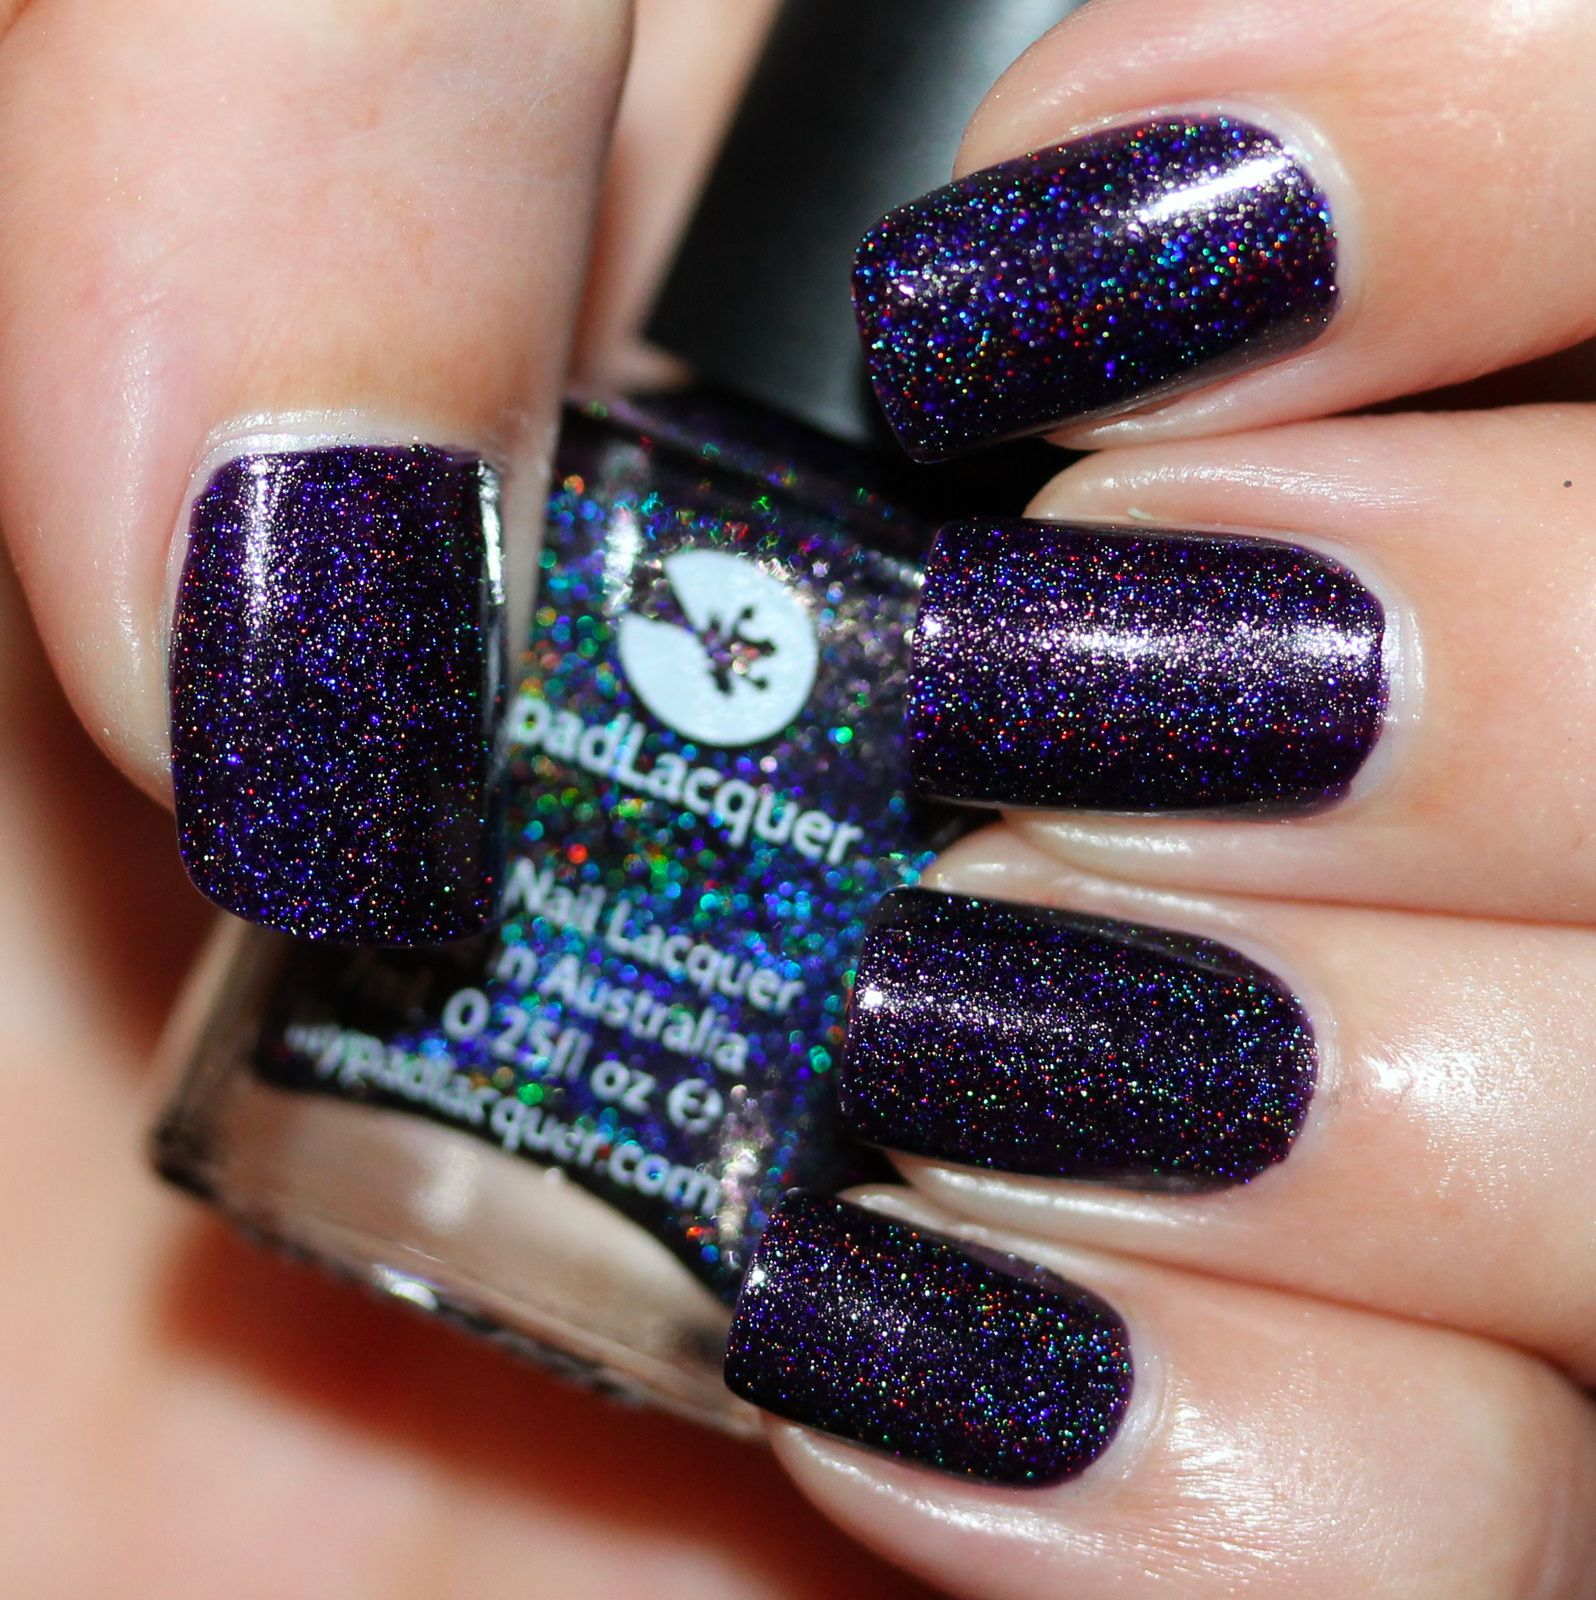 Lilypad Lacquer NIghtshade (2 coats, no top coat) | #Swatches ...